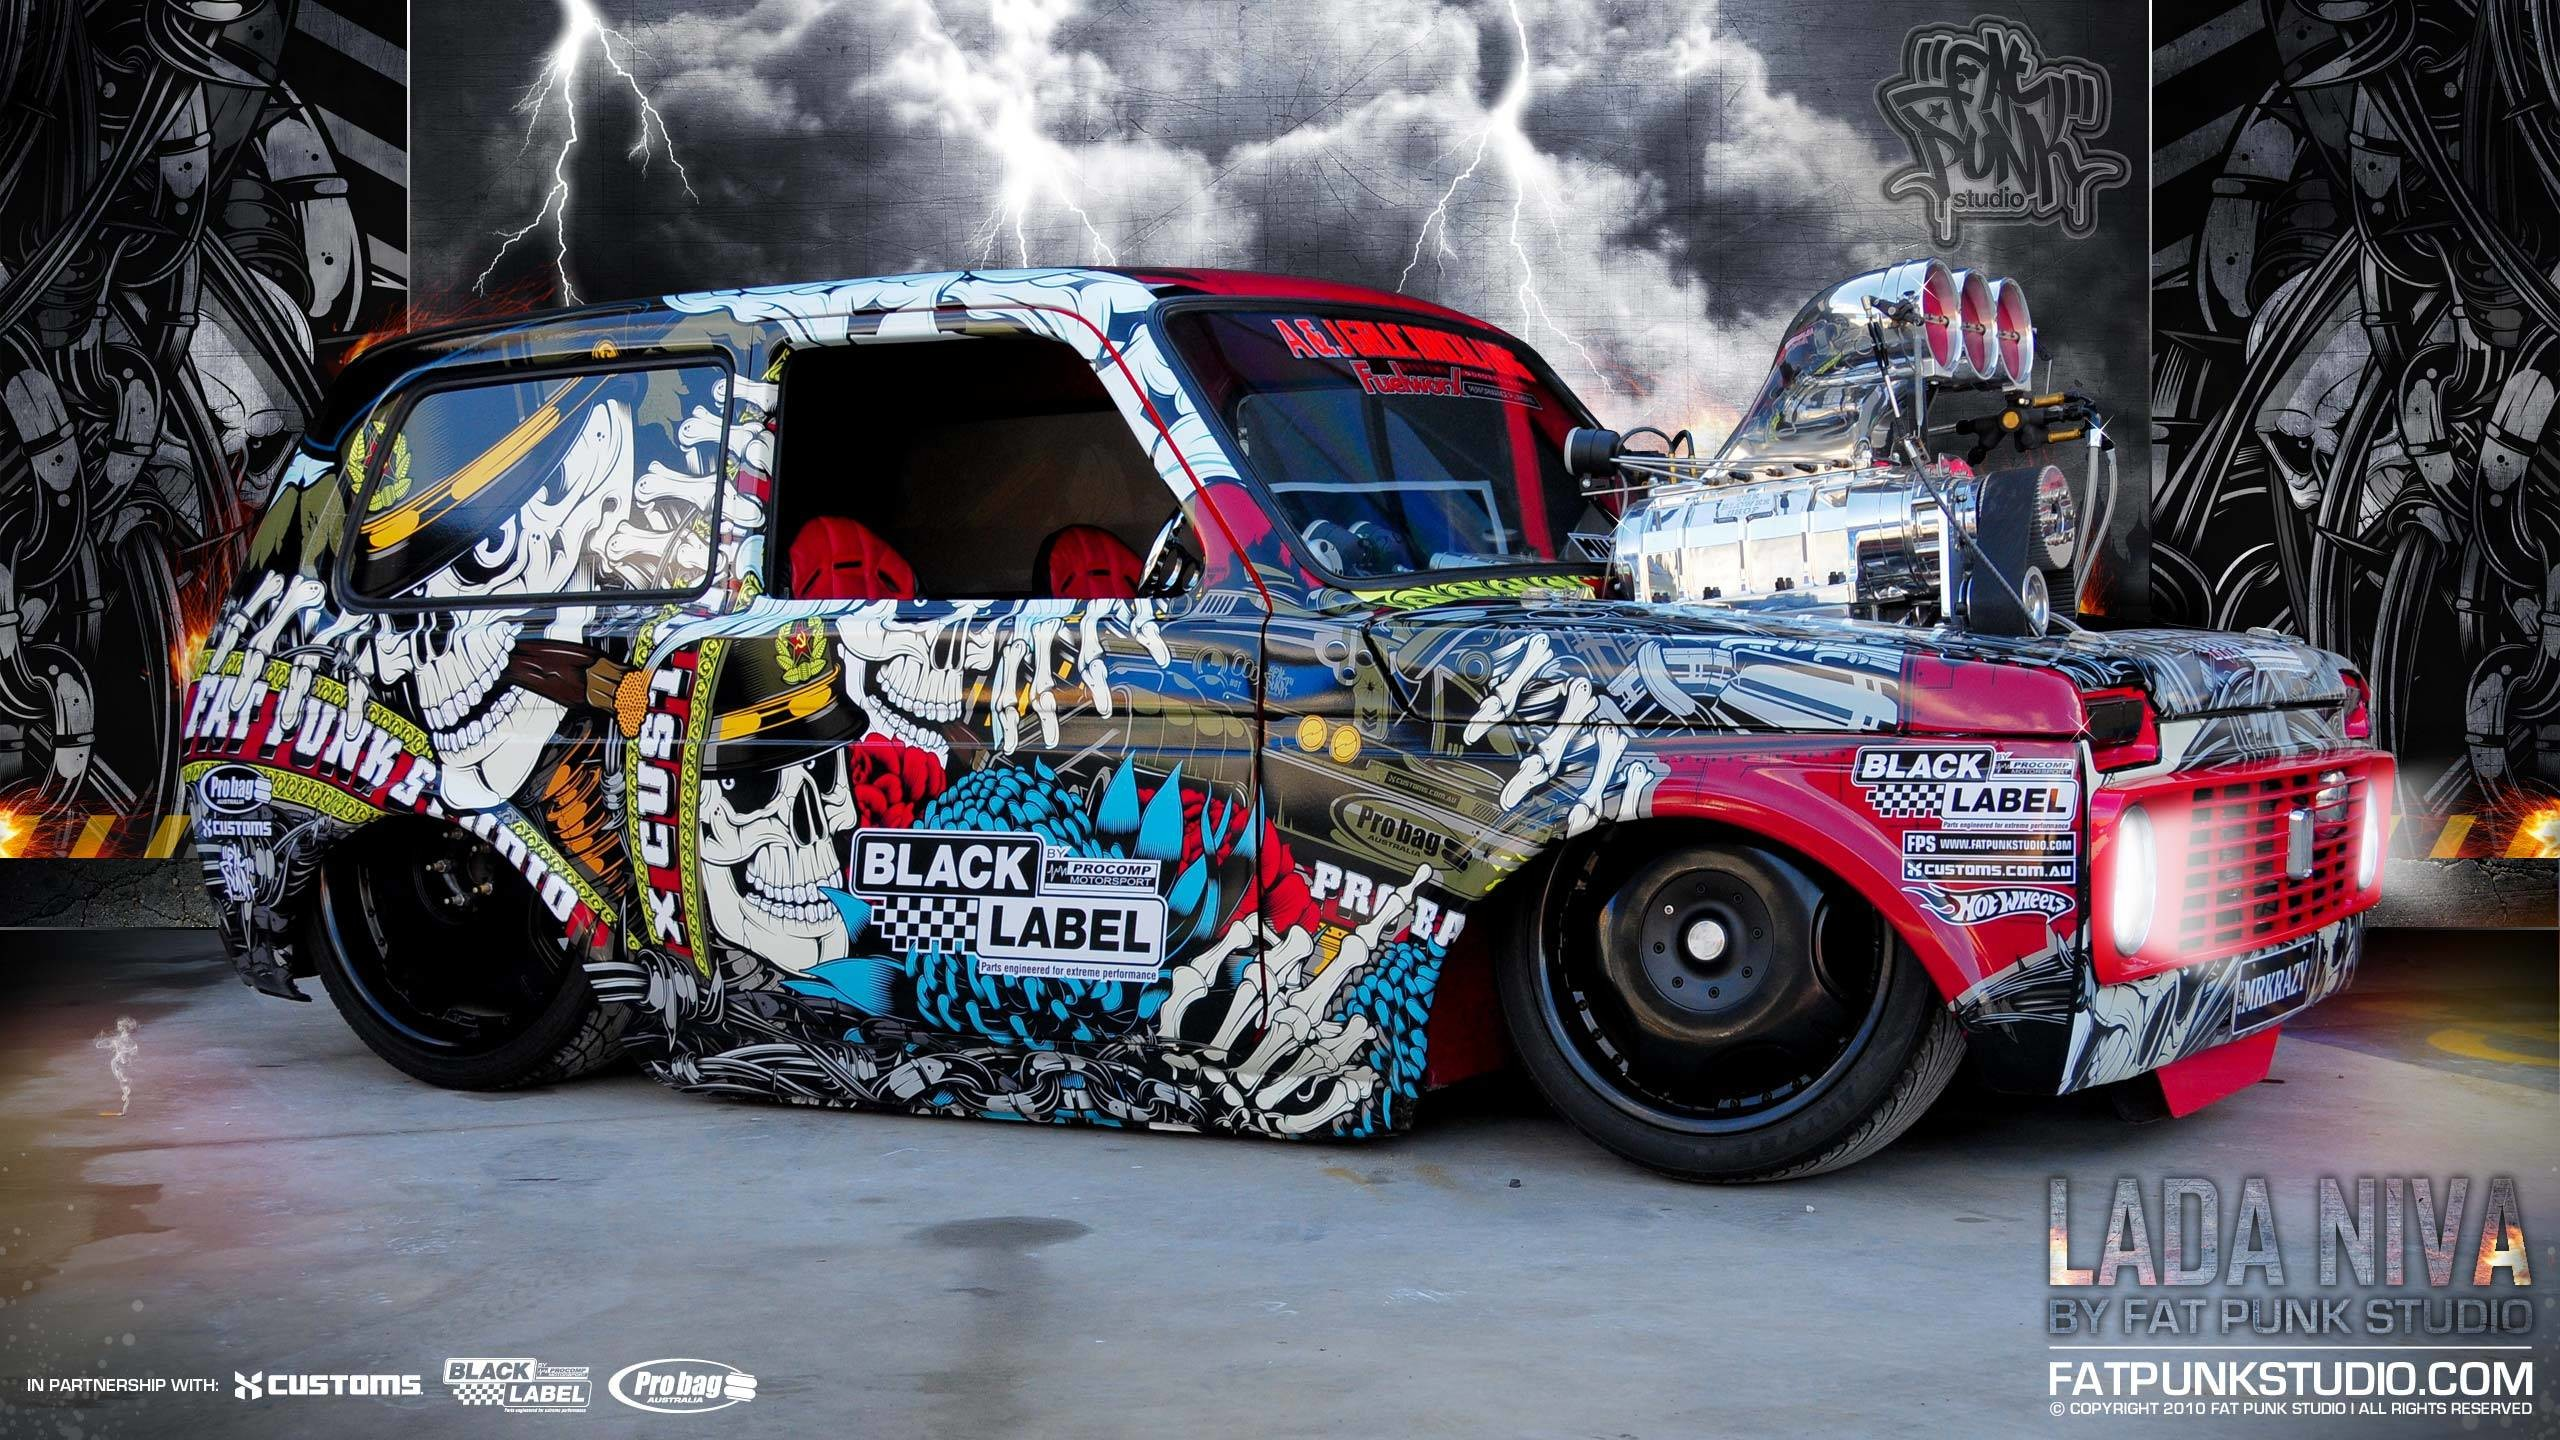 Res: 2560x1440, Cars Lowriders 2560×1440 Wallpaper 892272